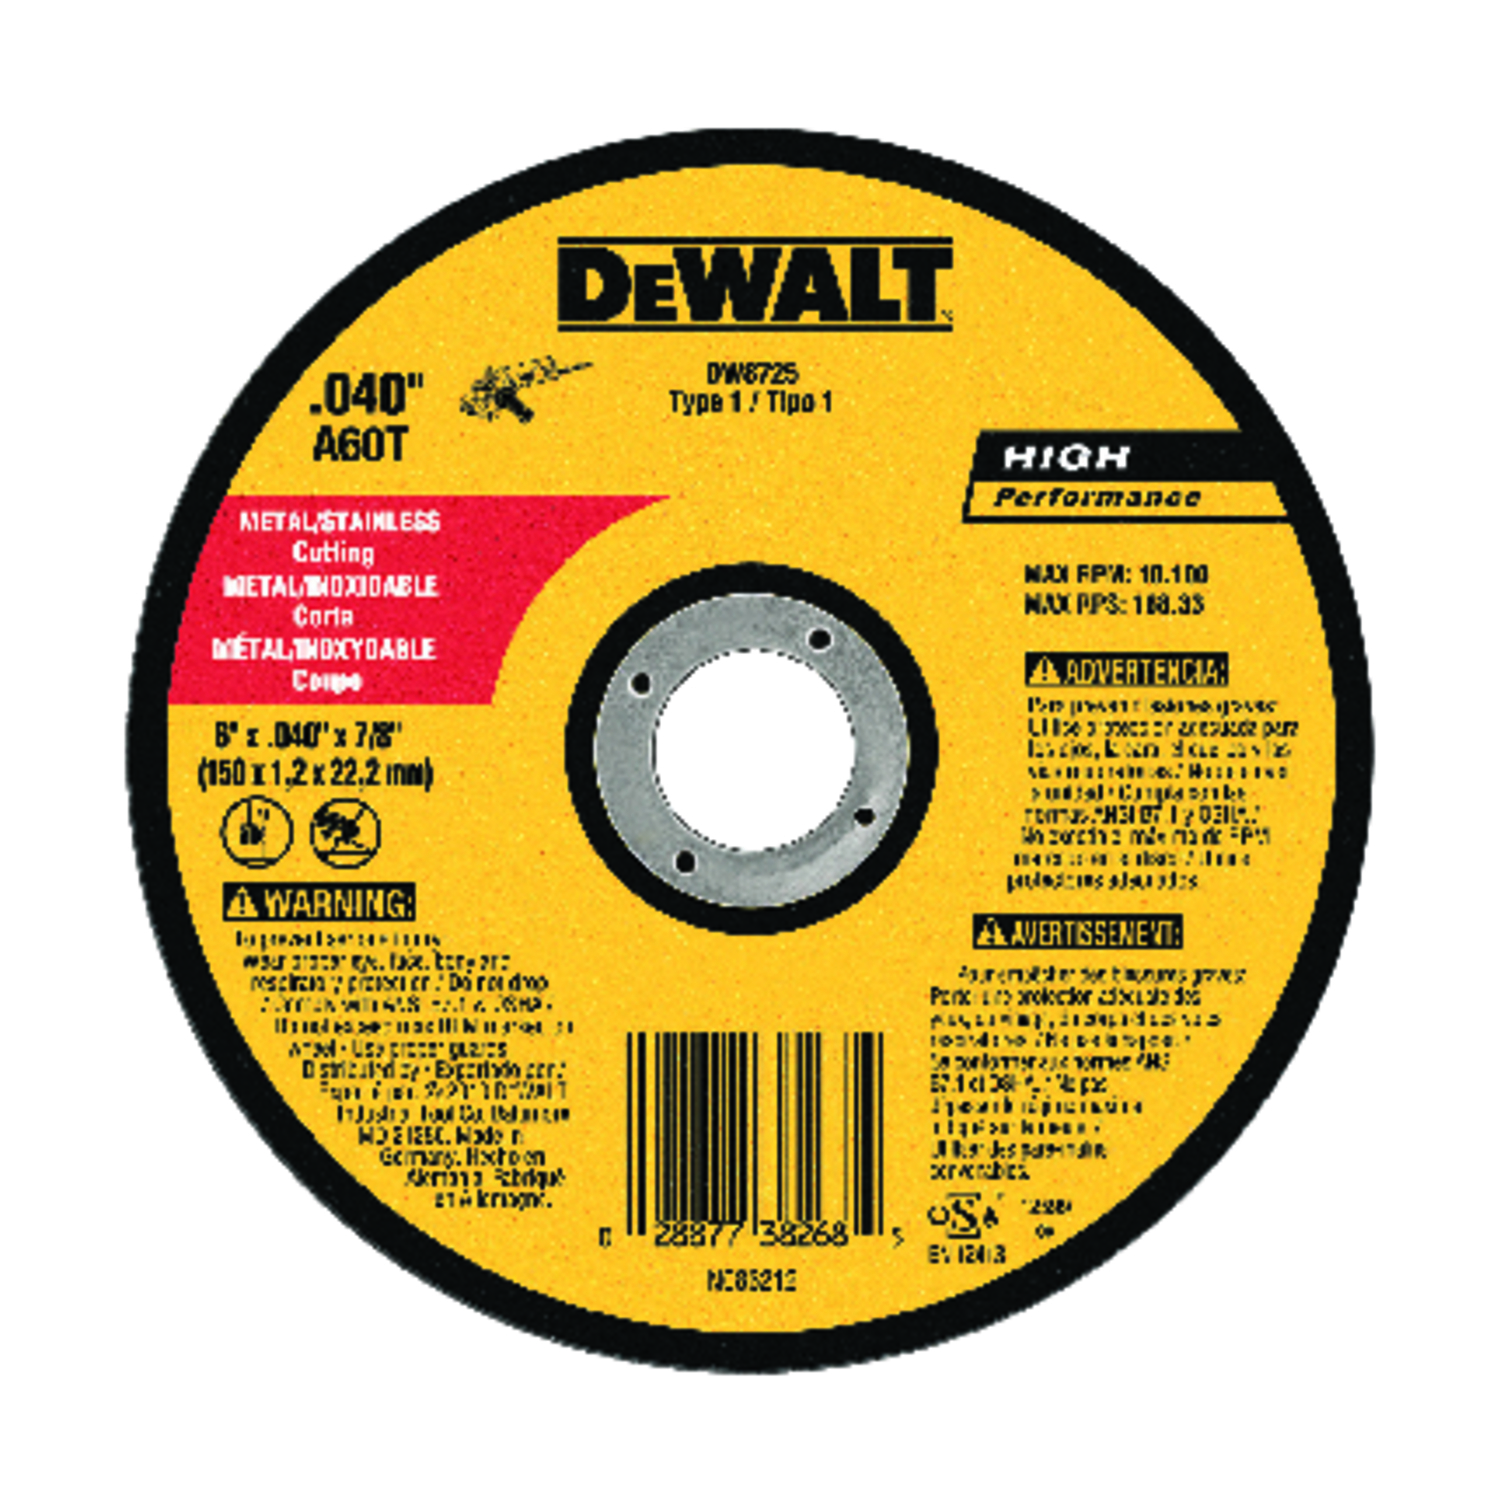 DeWalt  High Performance  6 in. 7/8 in. in.  Aluminum Oxide  Cut-Off Wheel  1 pc.